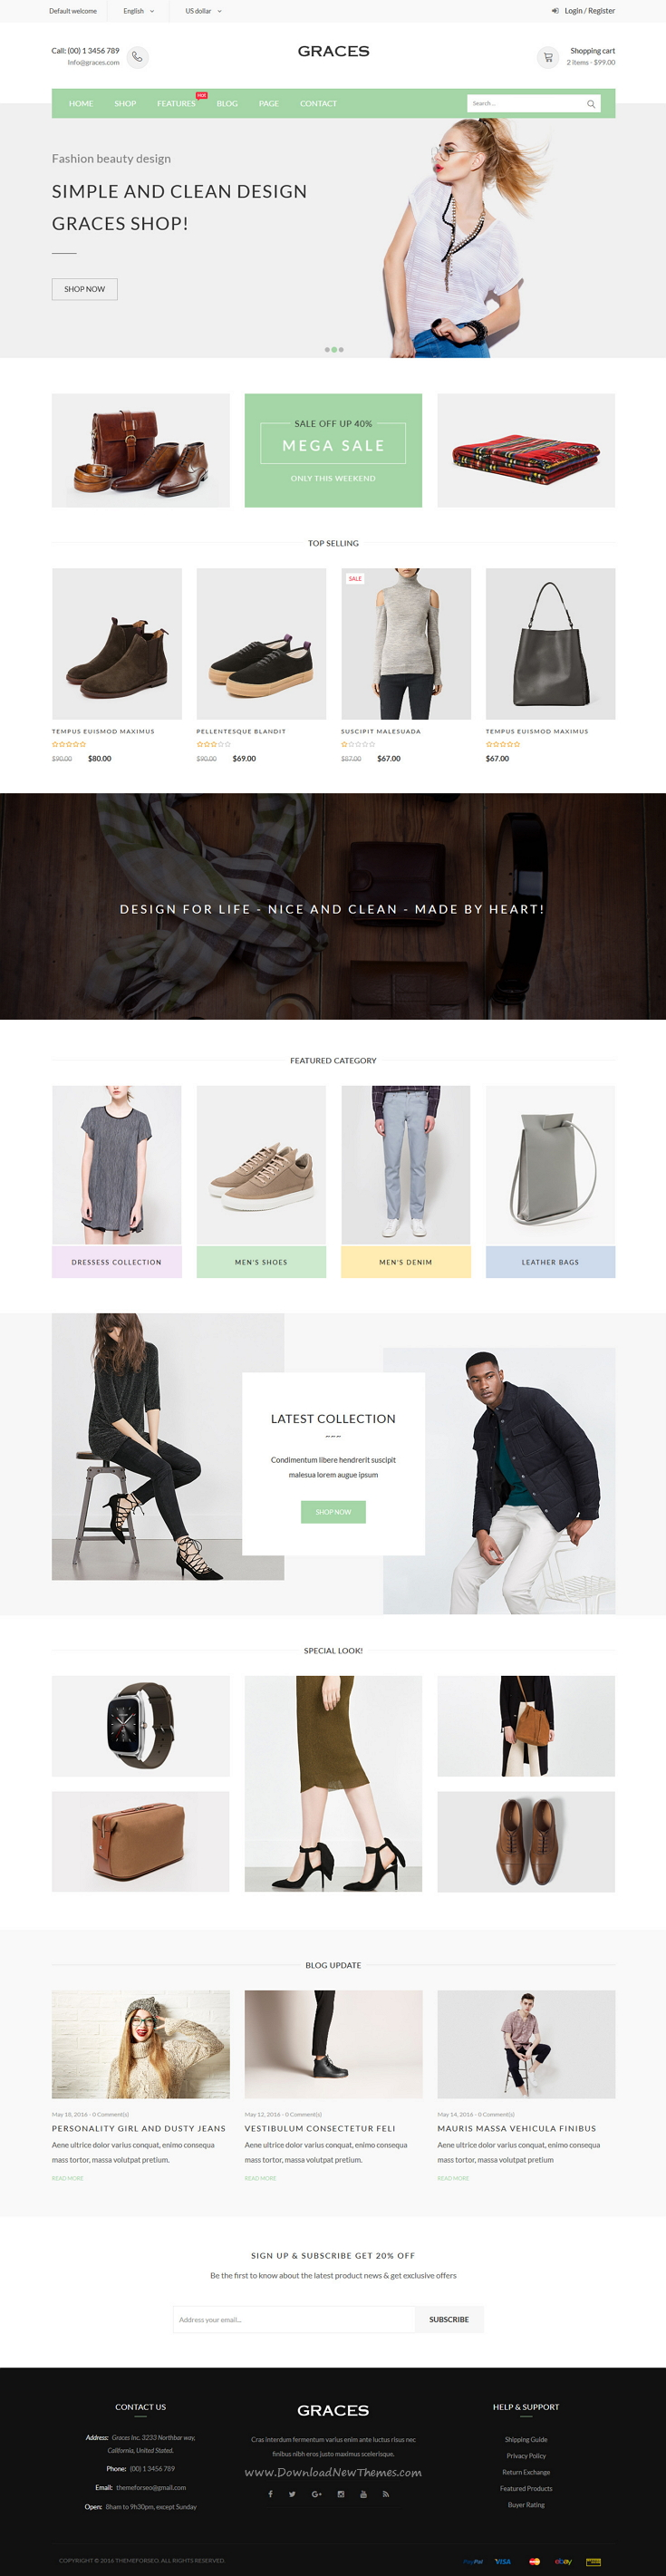 Graces is responsive Bootstrap HTML Template for multipurpose eCommerce website with 8 homepage #layouts. #dress #fashion #store Download Now!